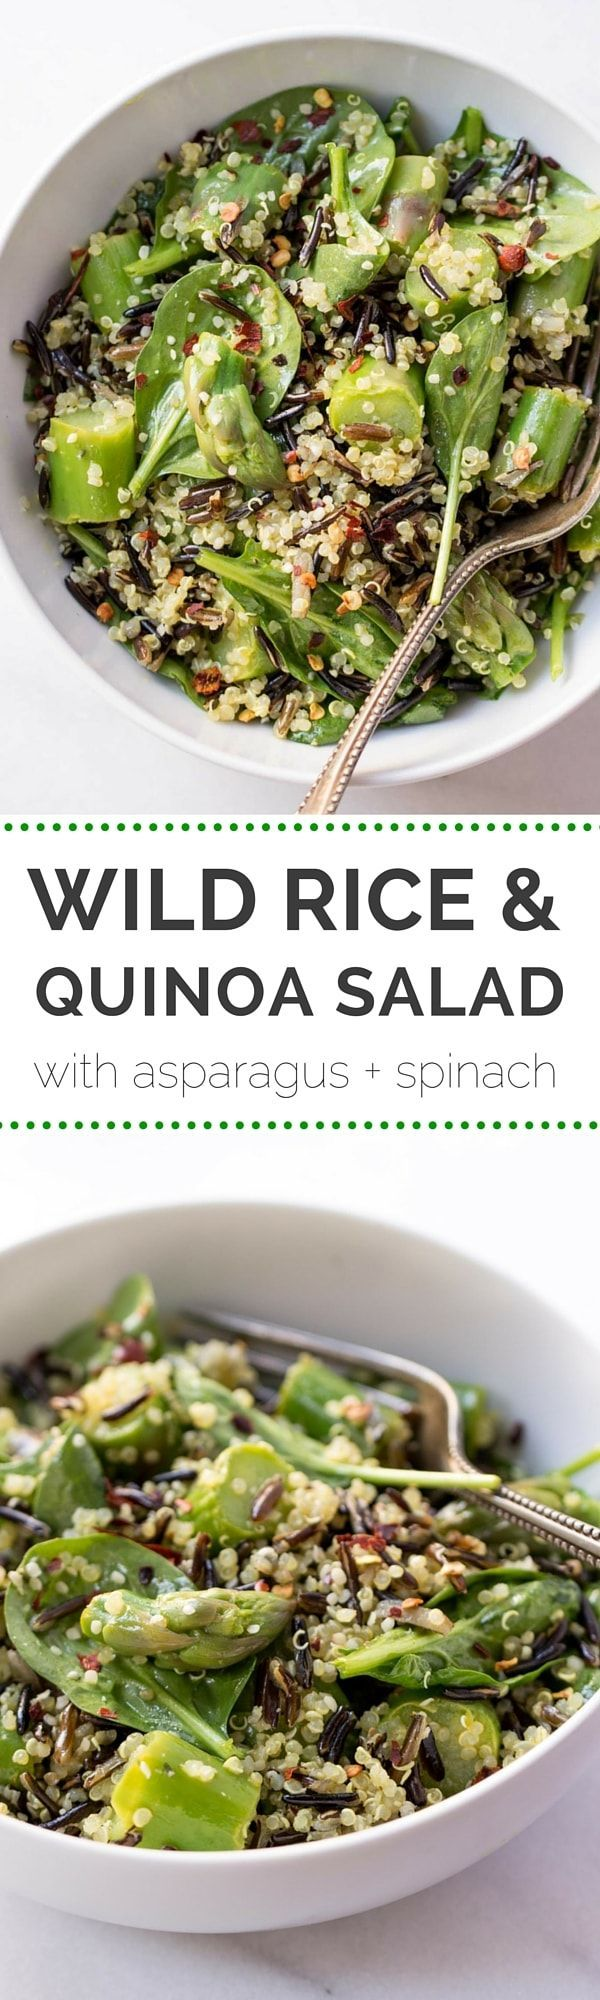 Wild Rice Quinoa Salad with asparagus and tossed in a lemon-turmeric vinaigrette - simple, healthy and super refreshing!